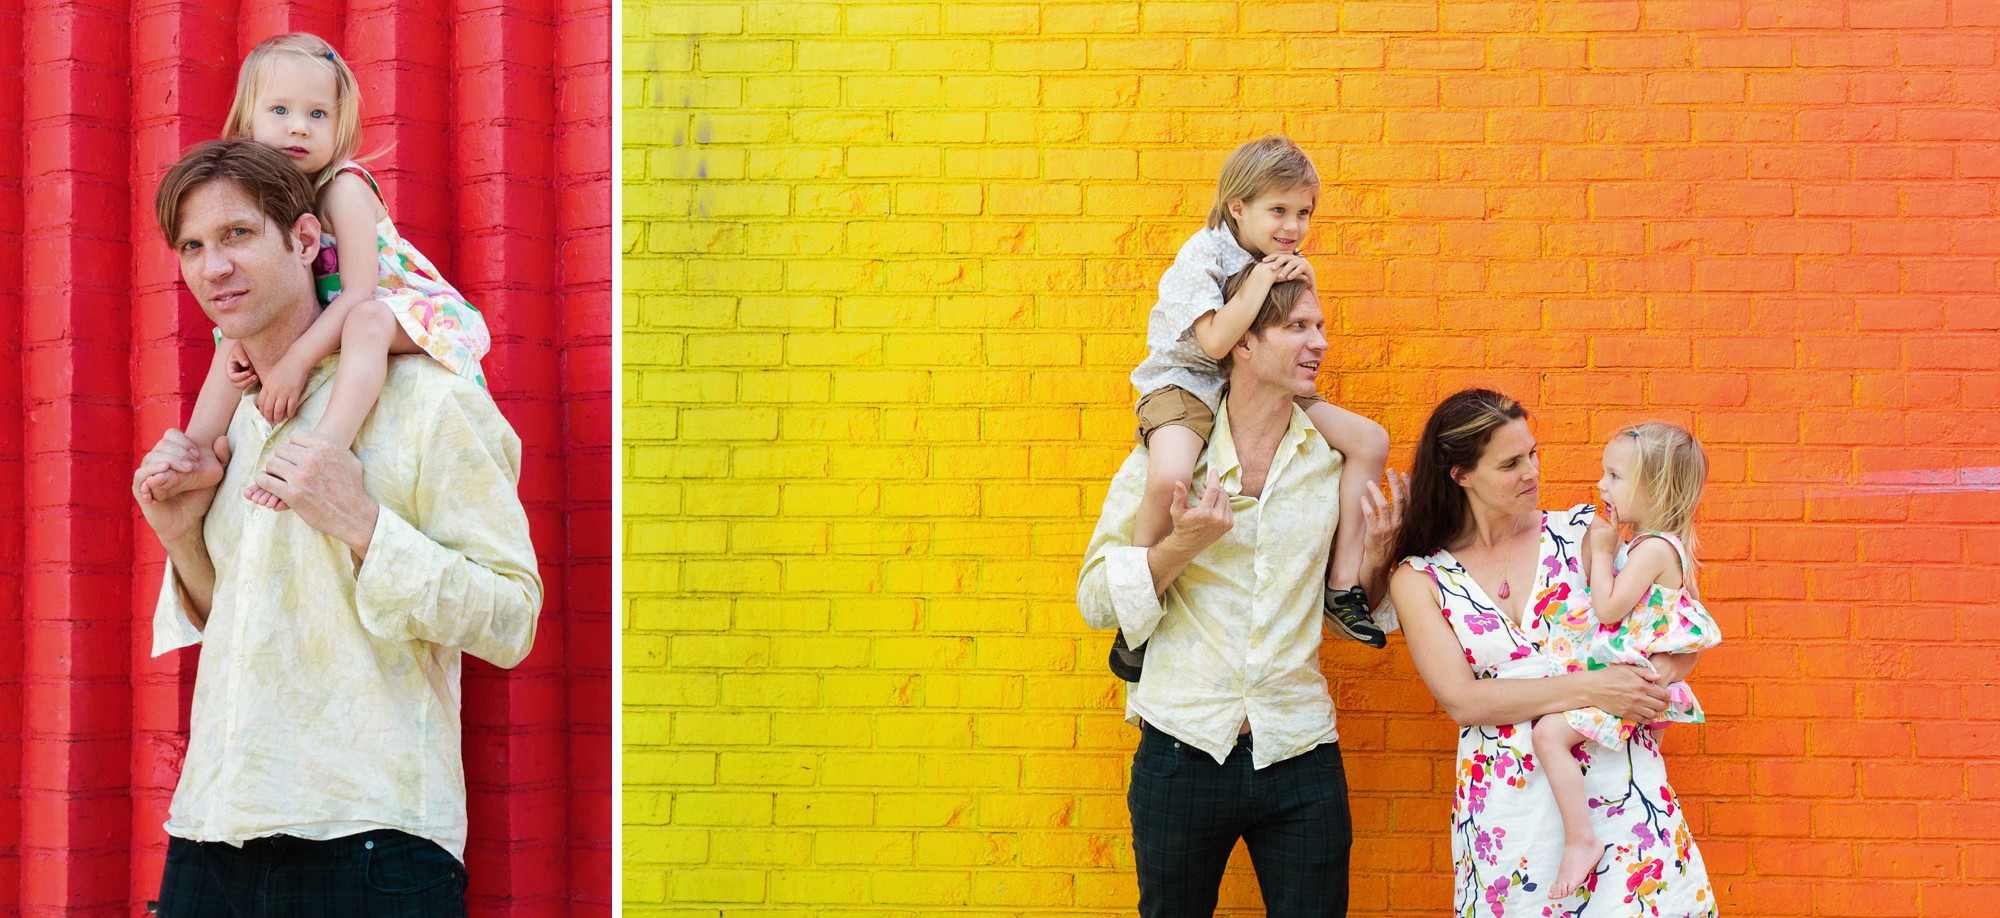 fun lifestyle family photography in dumbo brooklyn